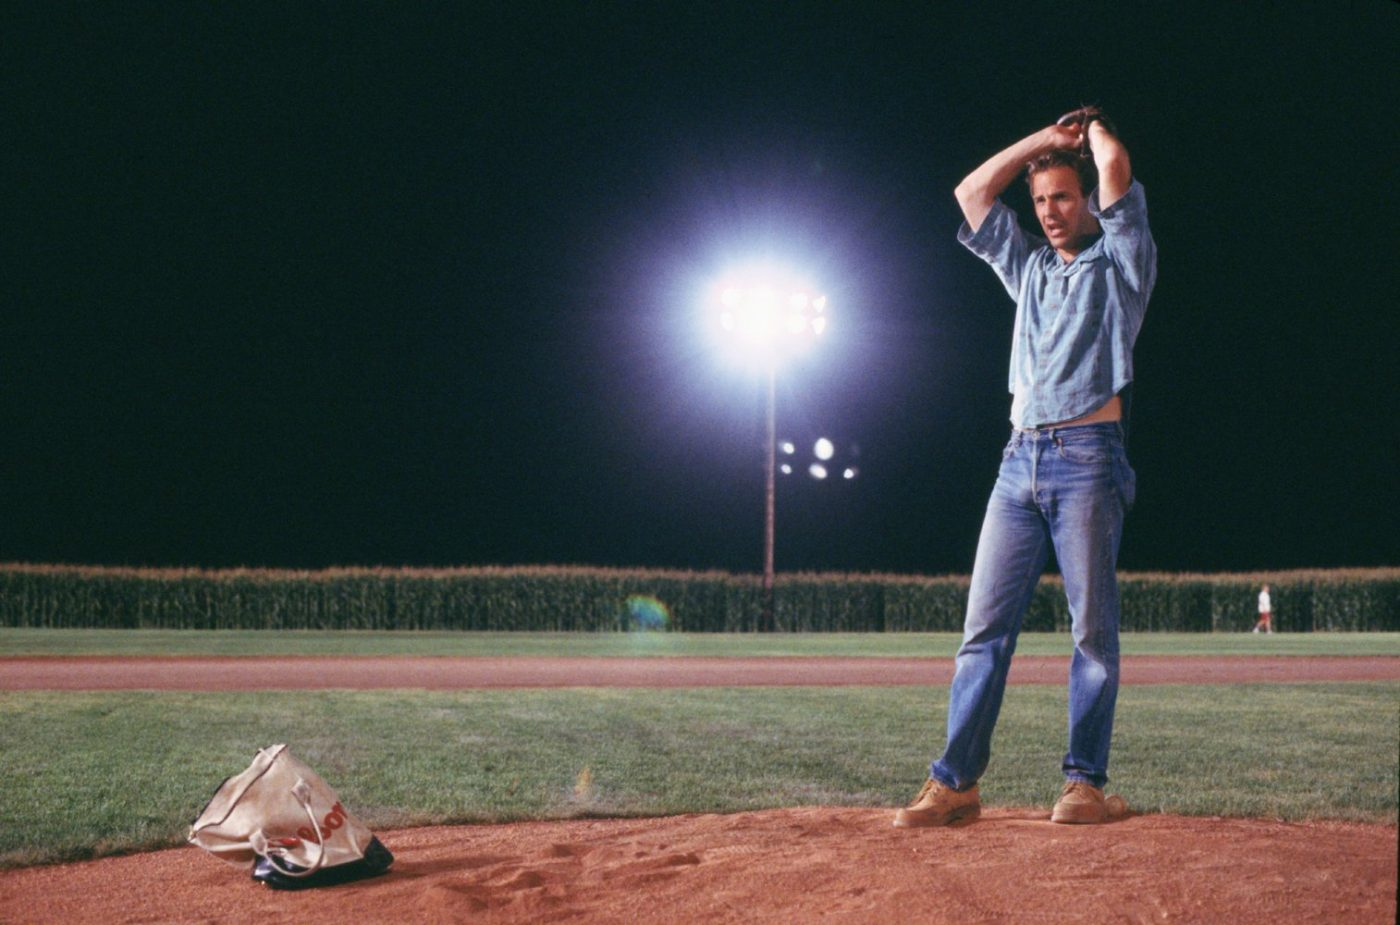 LightWorkers feel-good movies—Field of Dreams